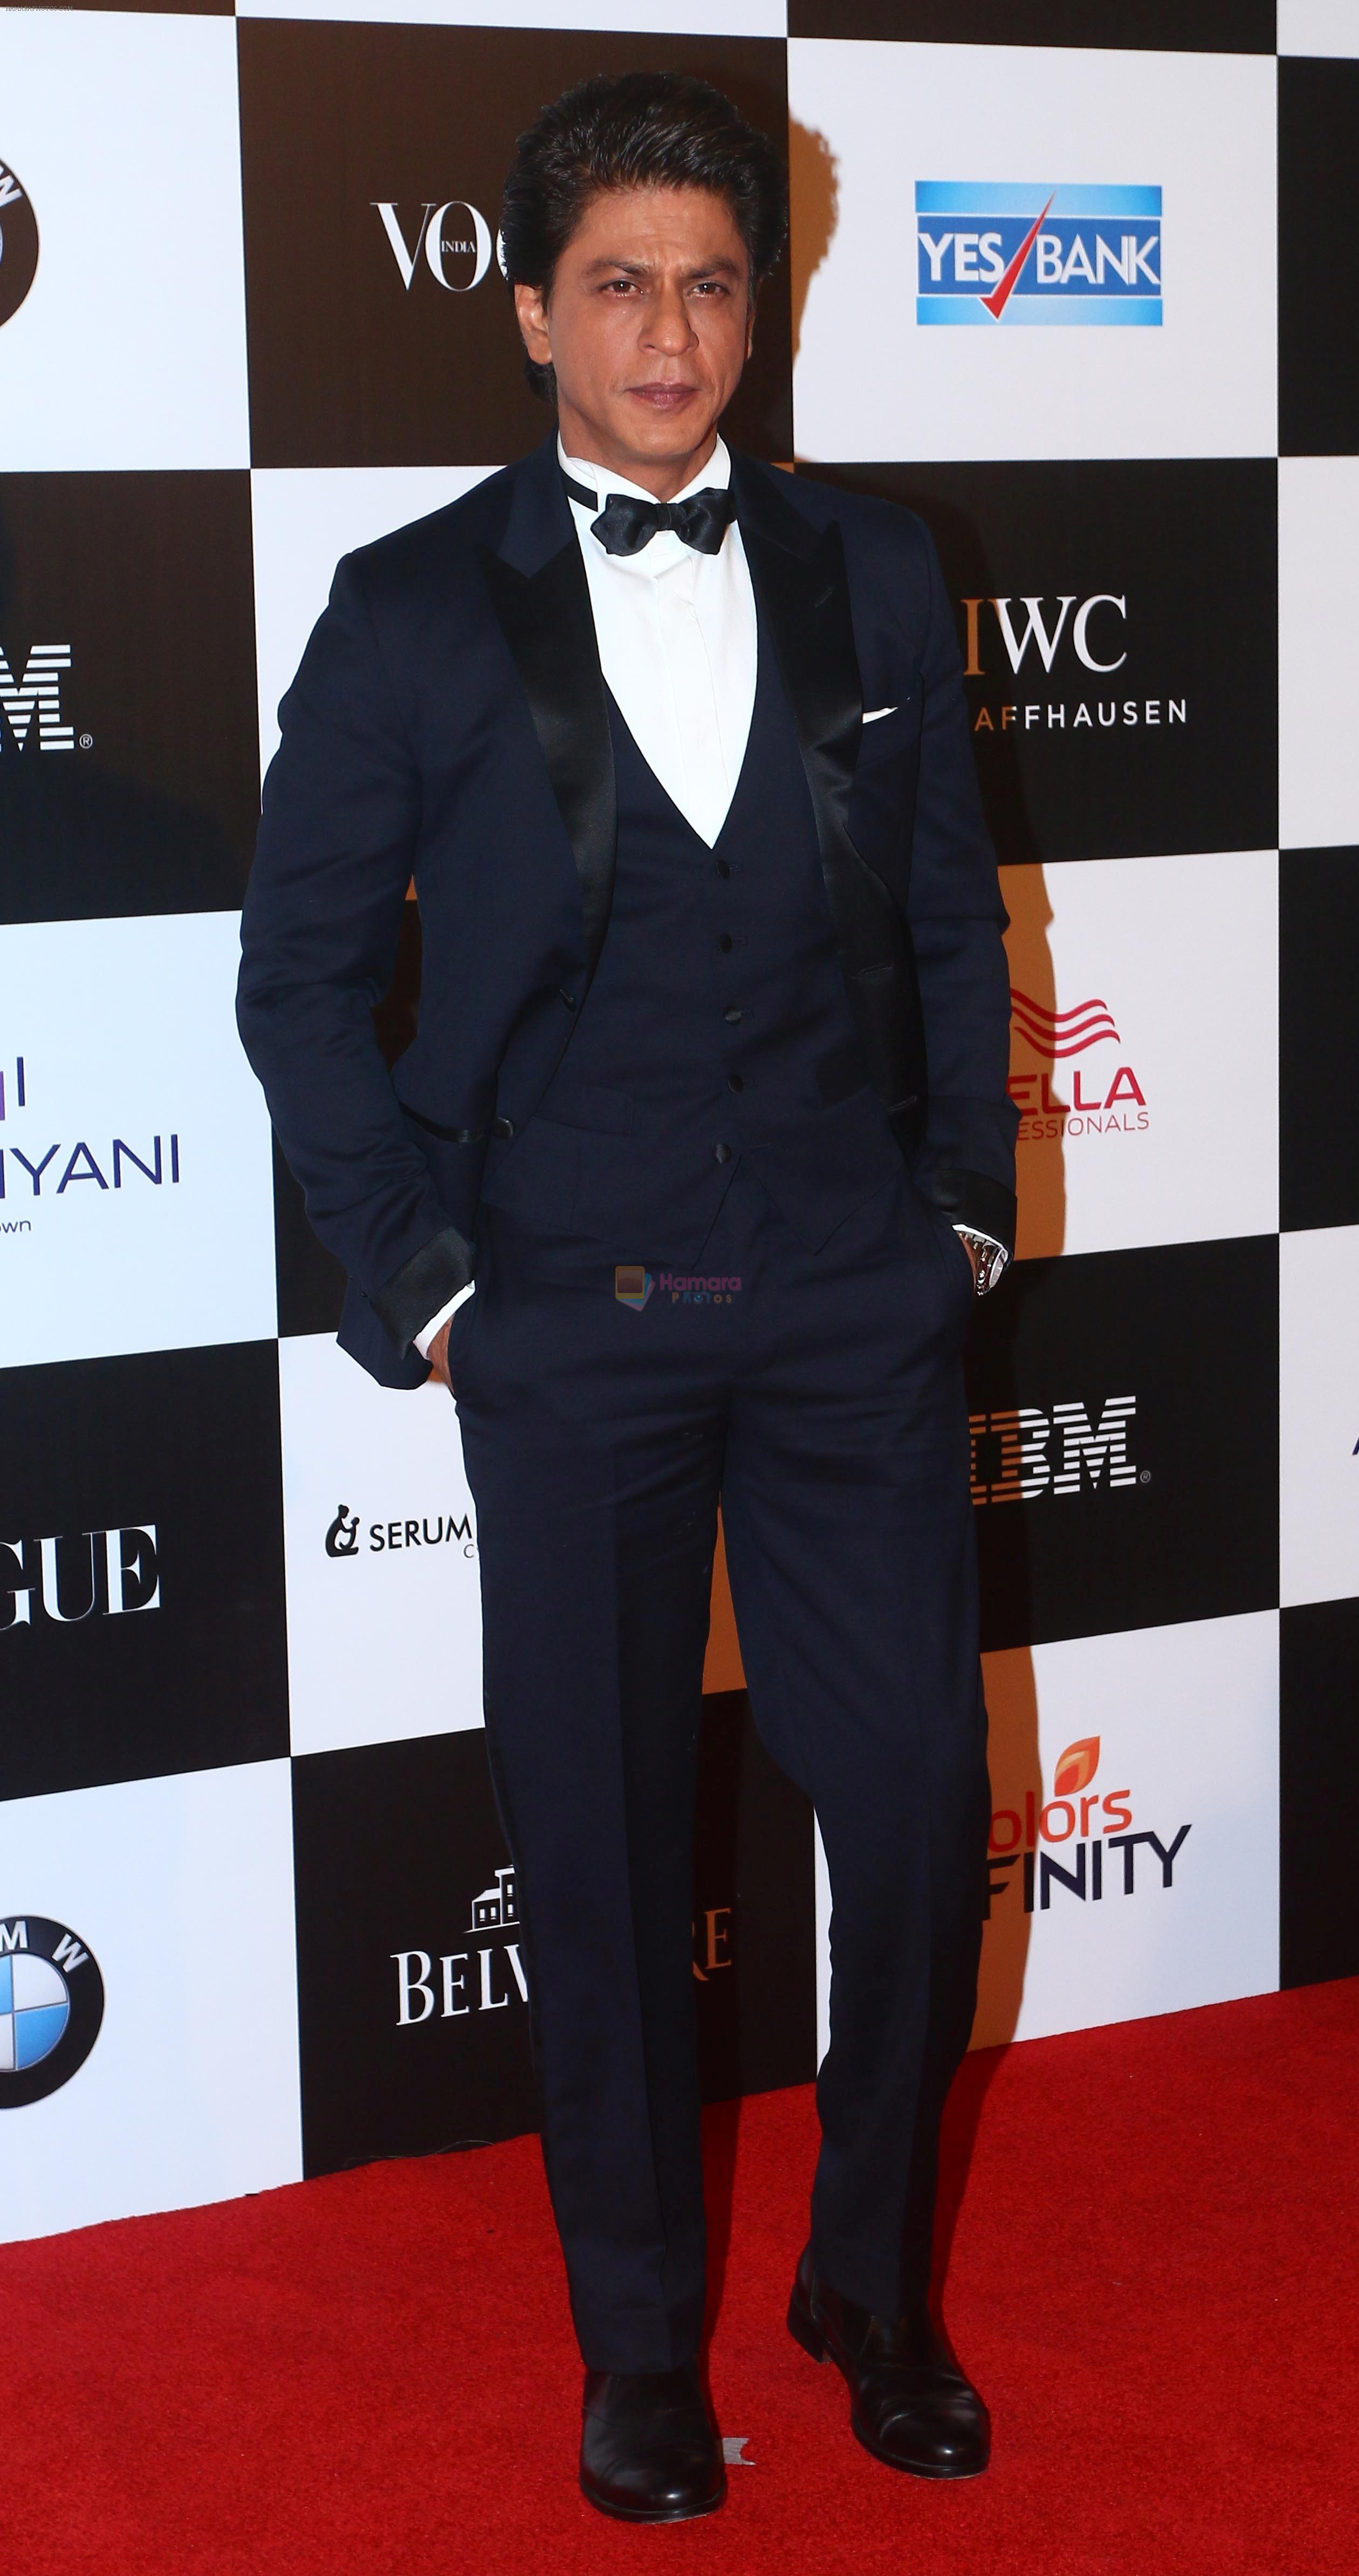 Shah Rukh Khan at the Red Carpet Of Vogue Women Of The Year 2017 on 25th Sept 2017